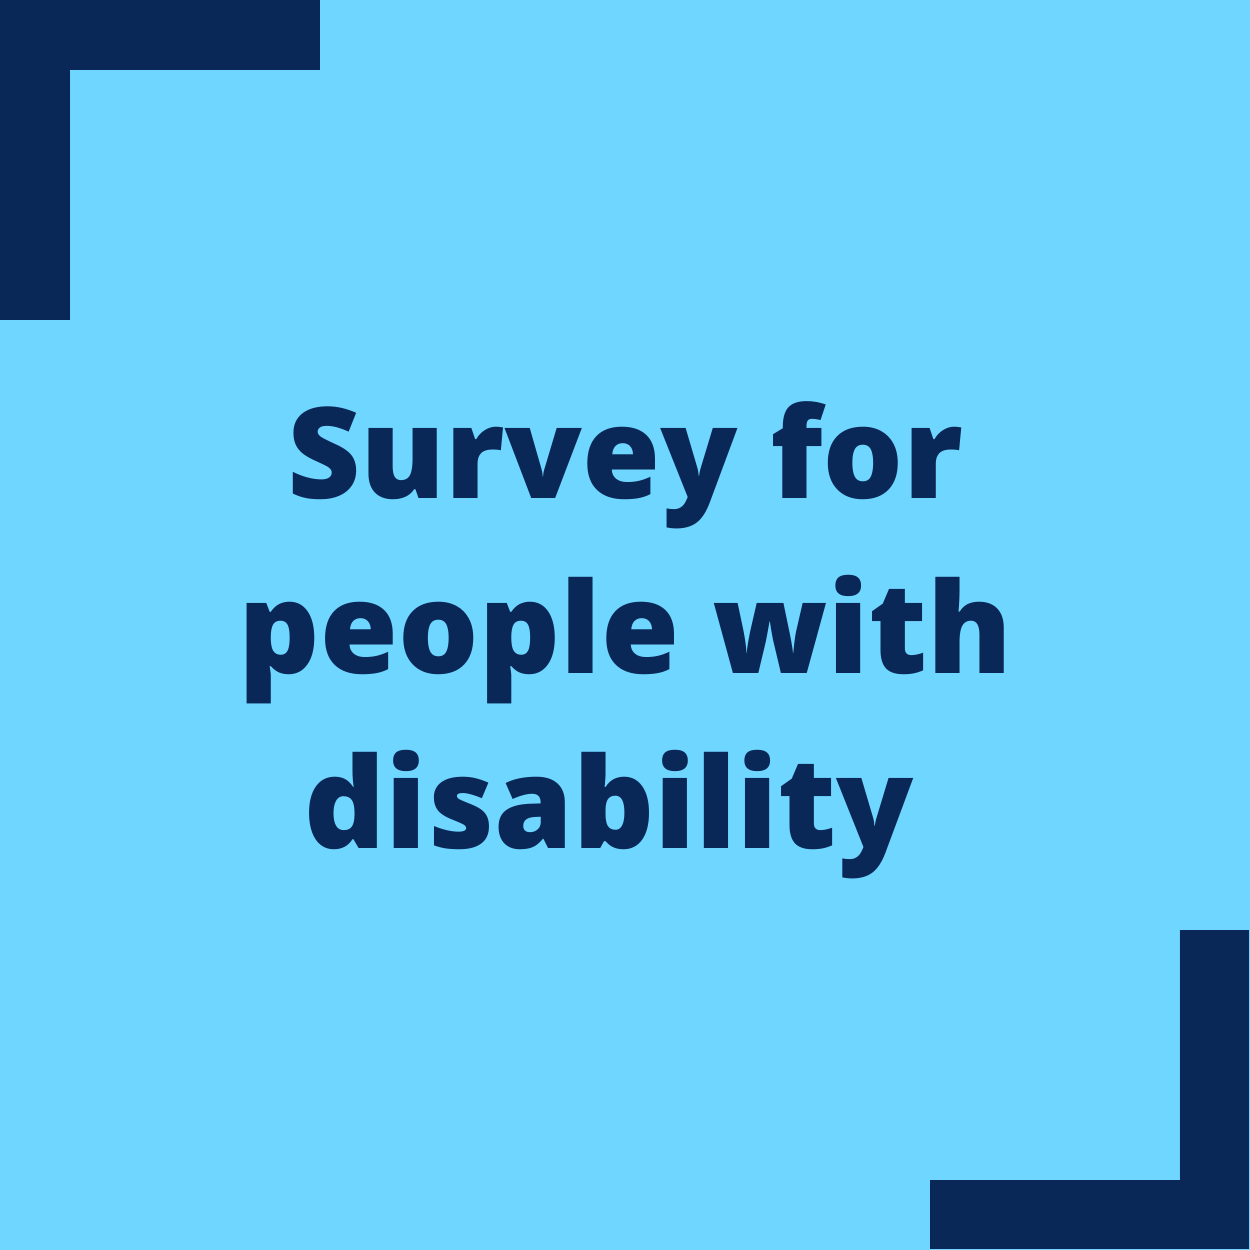 Survey for people with disability